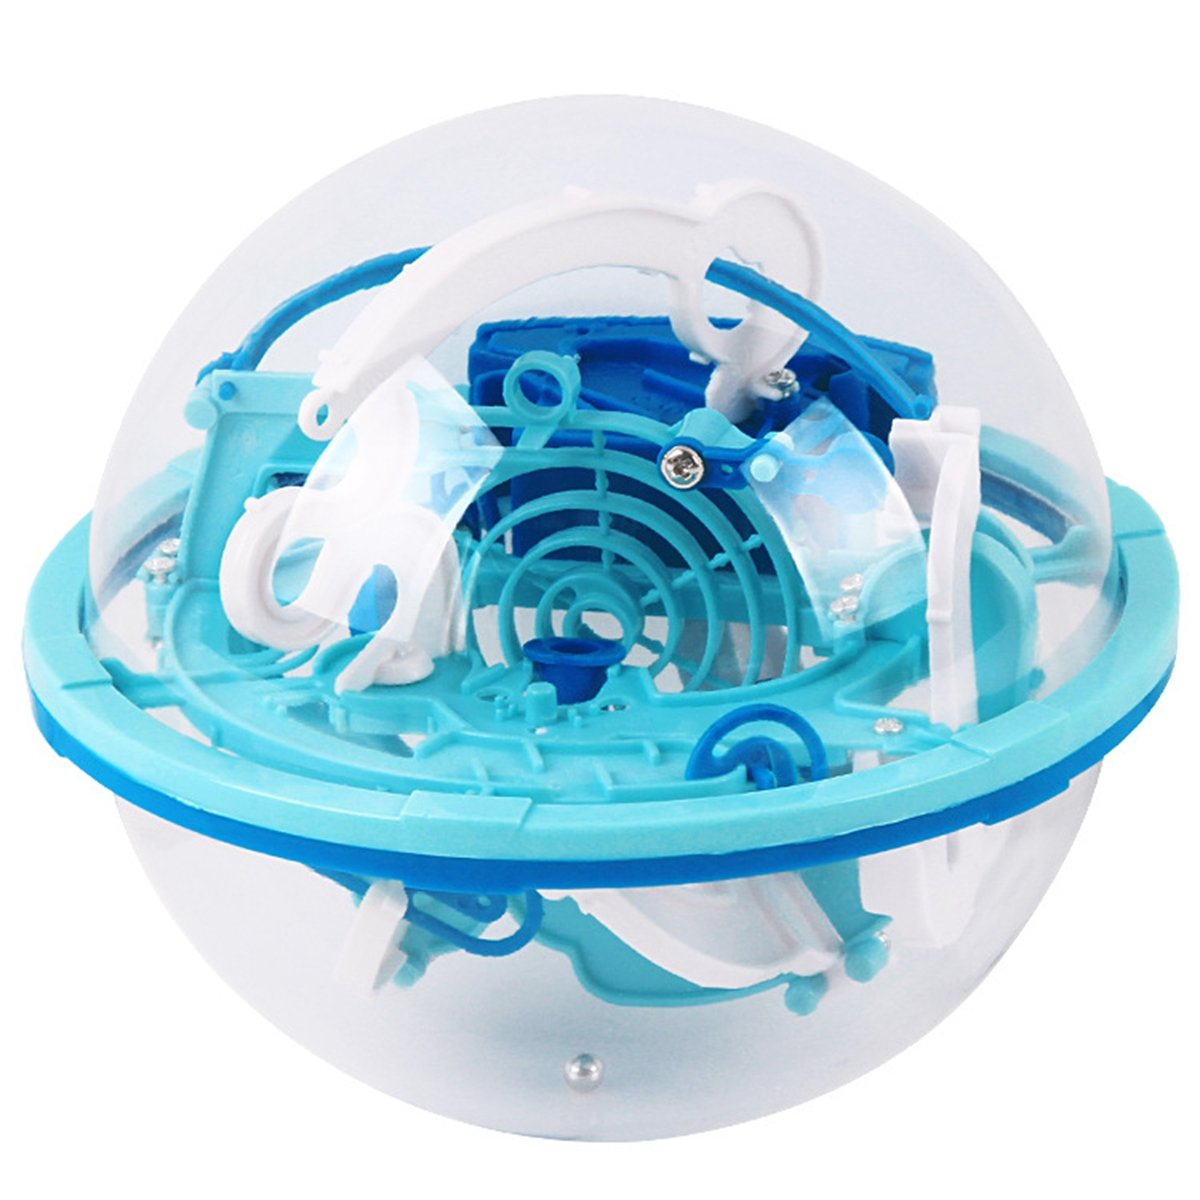 Labyrinth Globe Toys Primary 100 Challenging Barriers Best